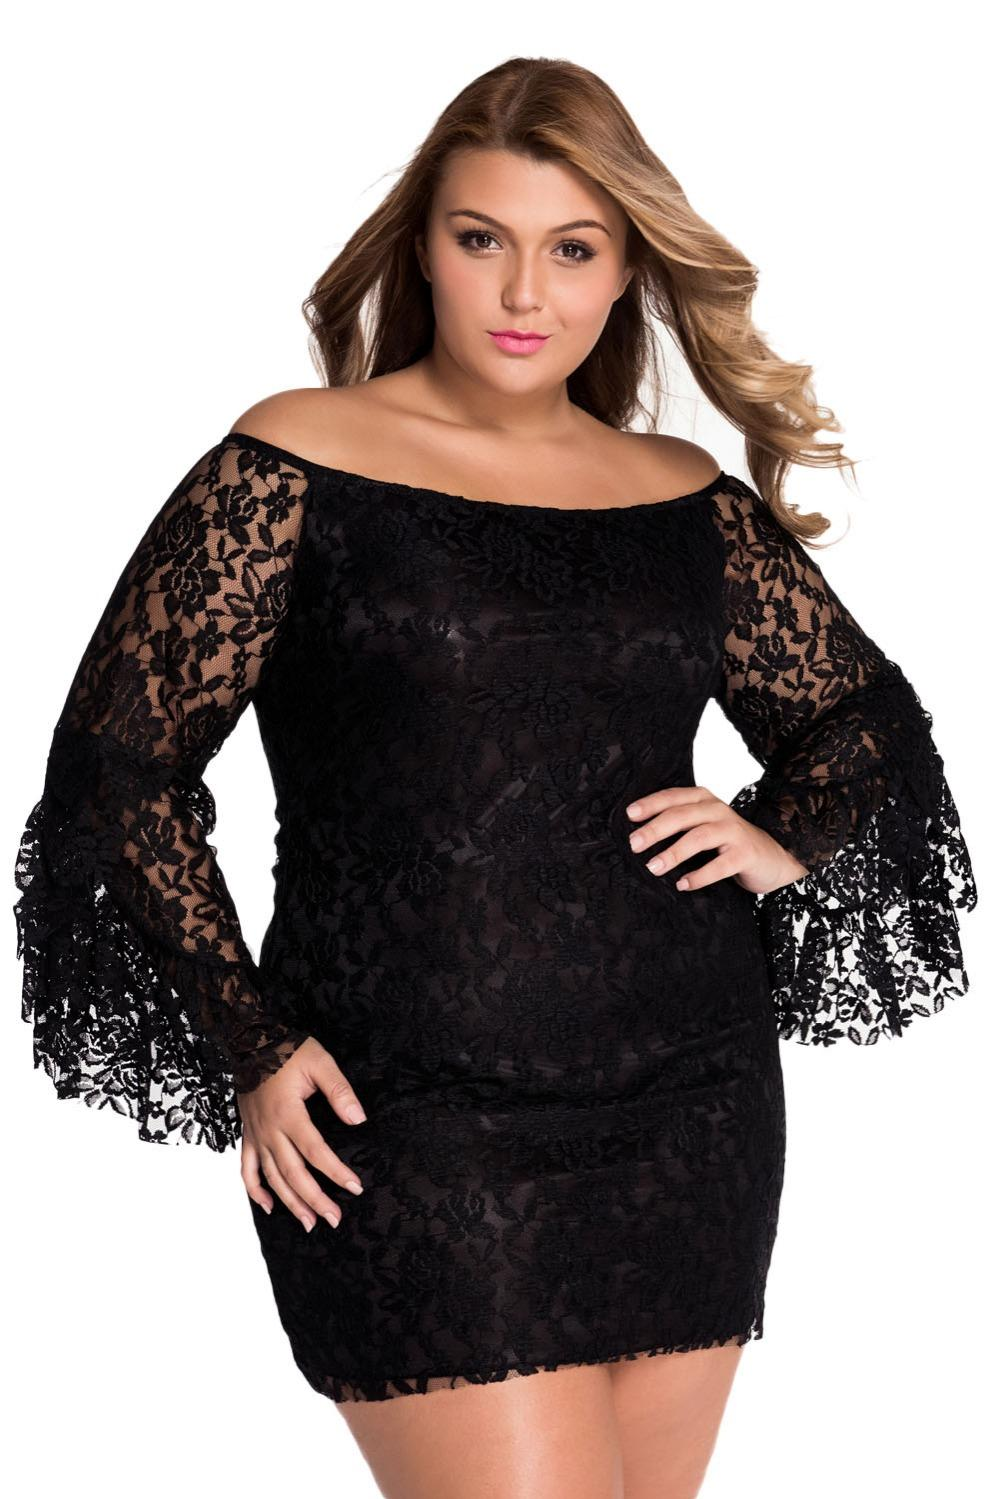 f4cabe8bb97d Hot Selling Hollow Out Ladies Cream Lace Off The Shoulder Mini Dress Sexy  Autumn Summer Women Black Cocktail Dresses Dresses For Juniors From  Xuxiaoniu2